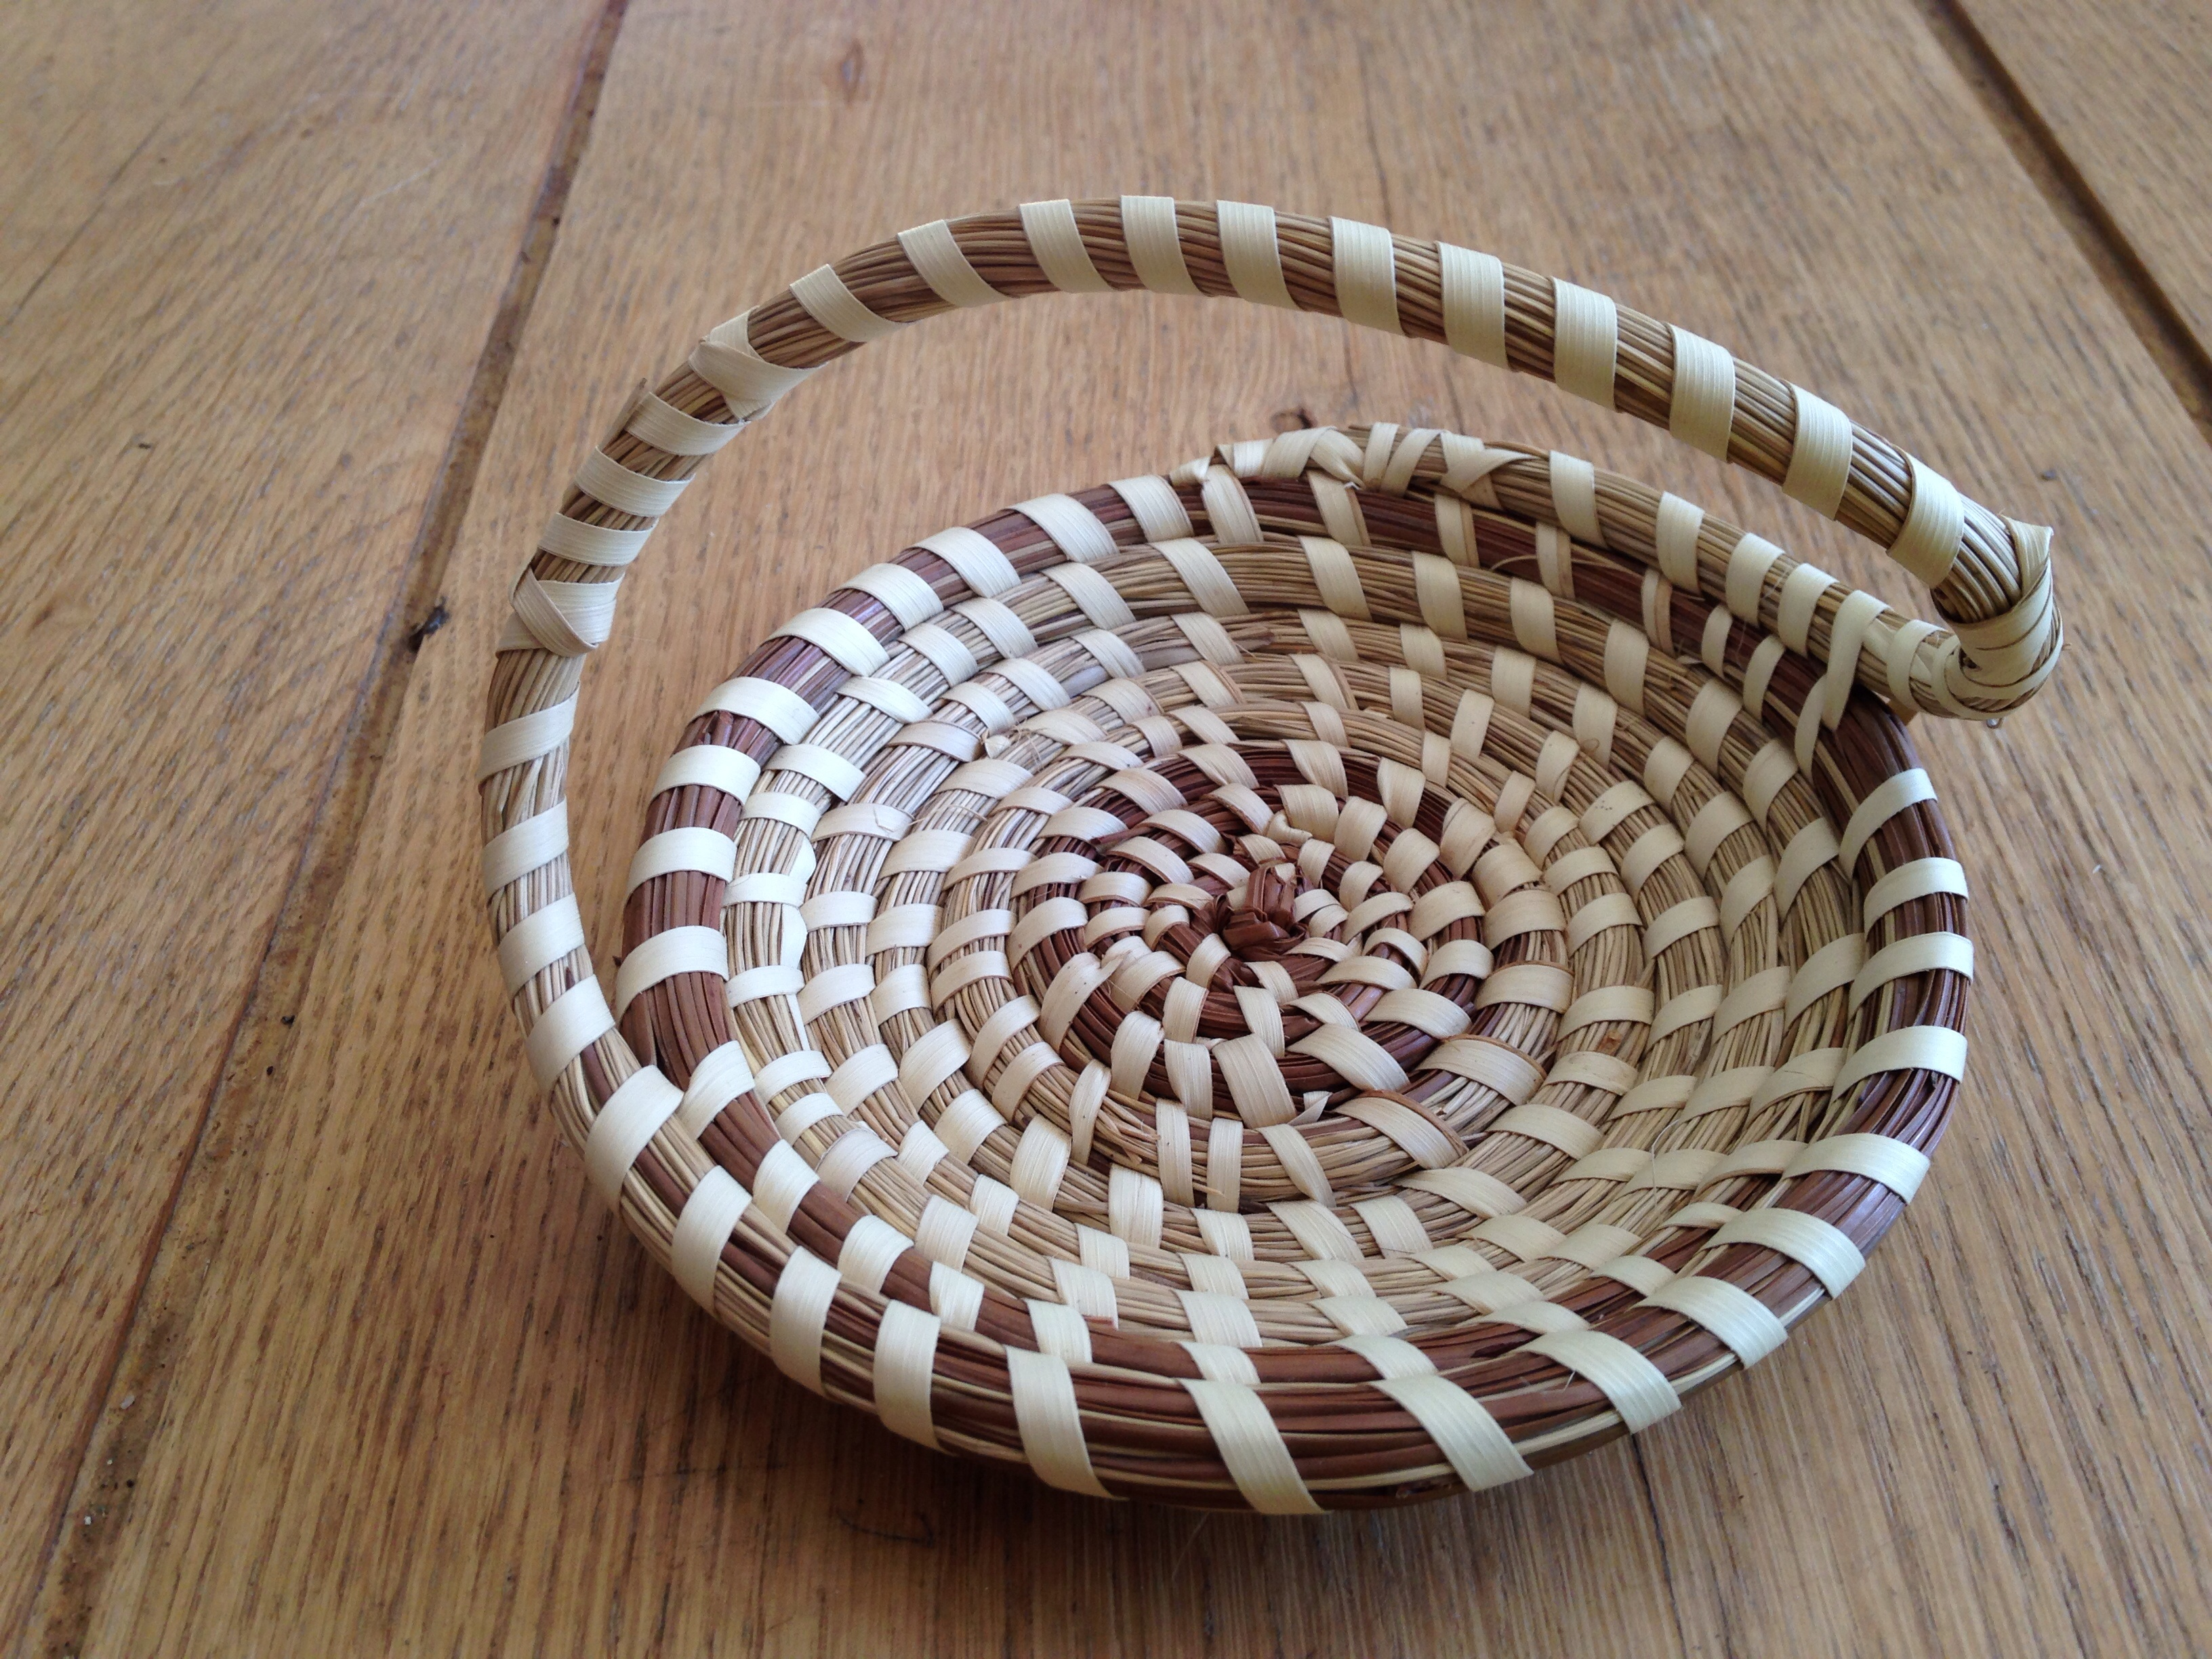 Coiled sweetgrass and pine needle basket from Charleston